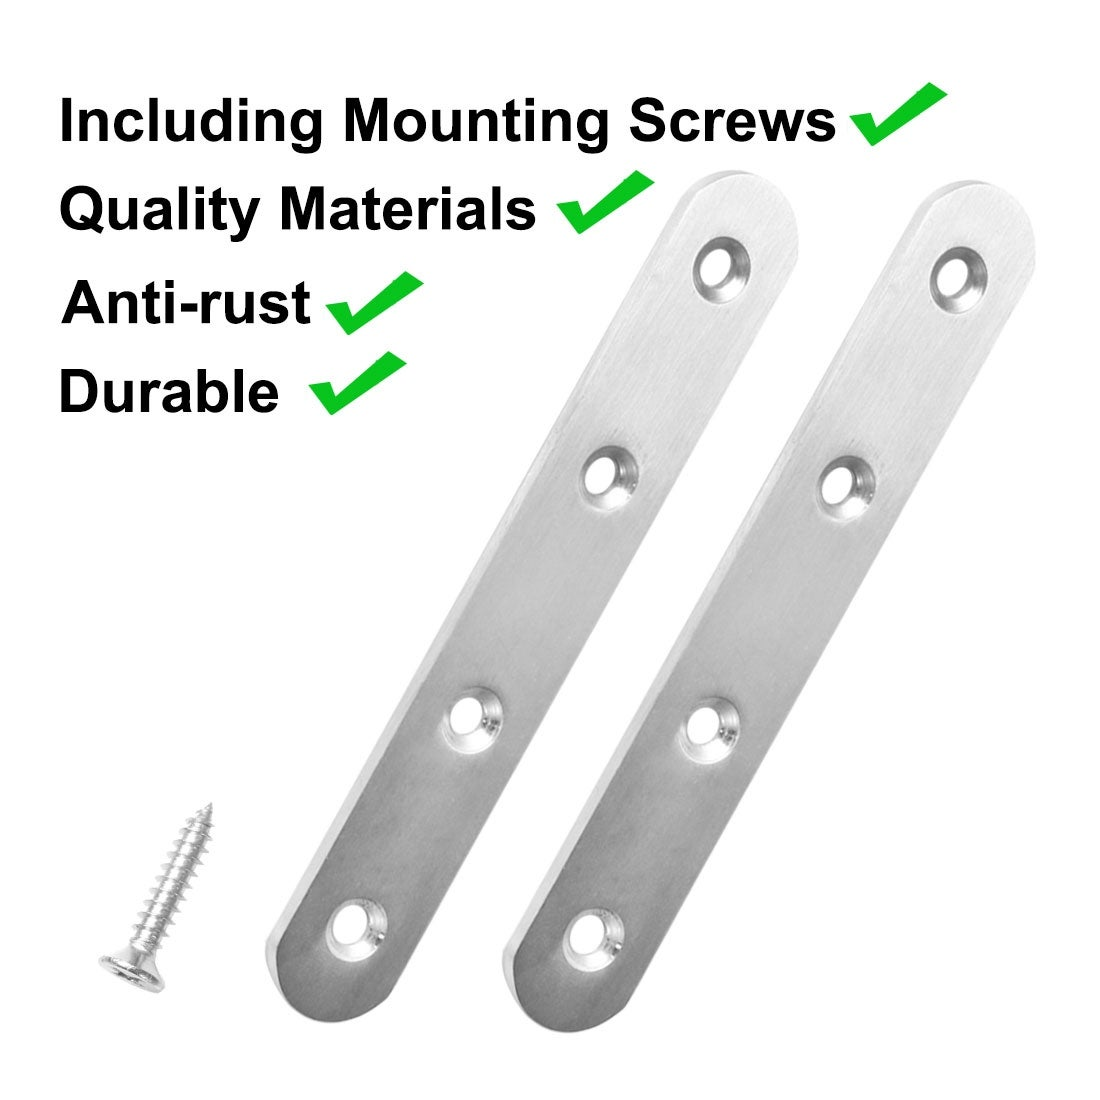 Honbay 12PCS Stainless Steel Flat Straight Braces Brackets with Screws for Fixing